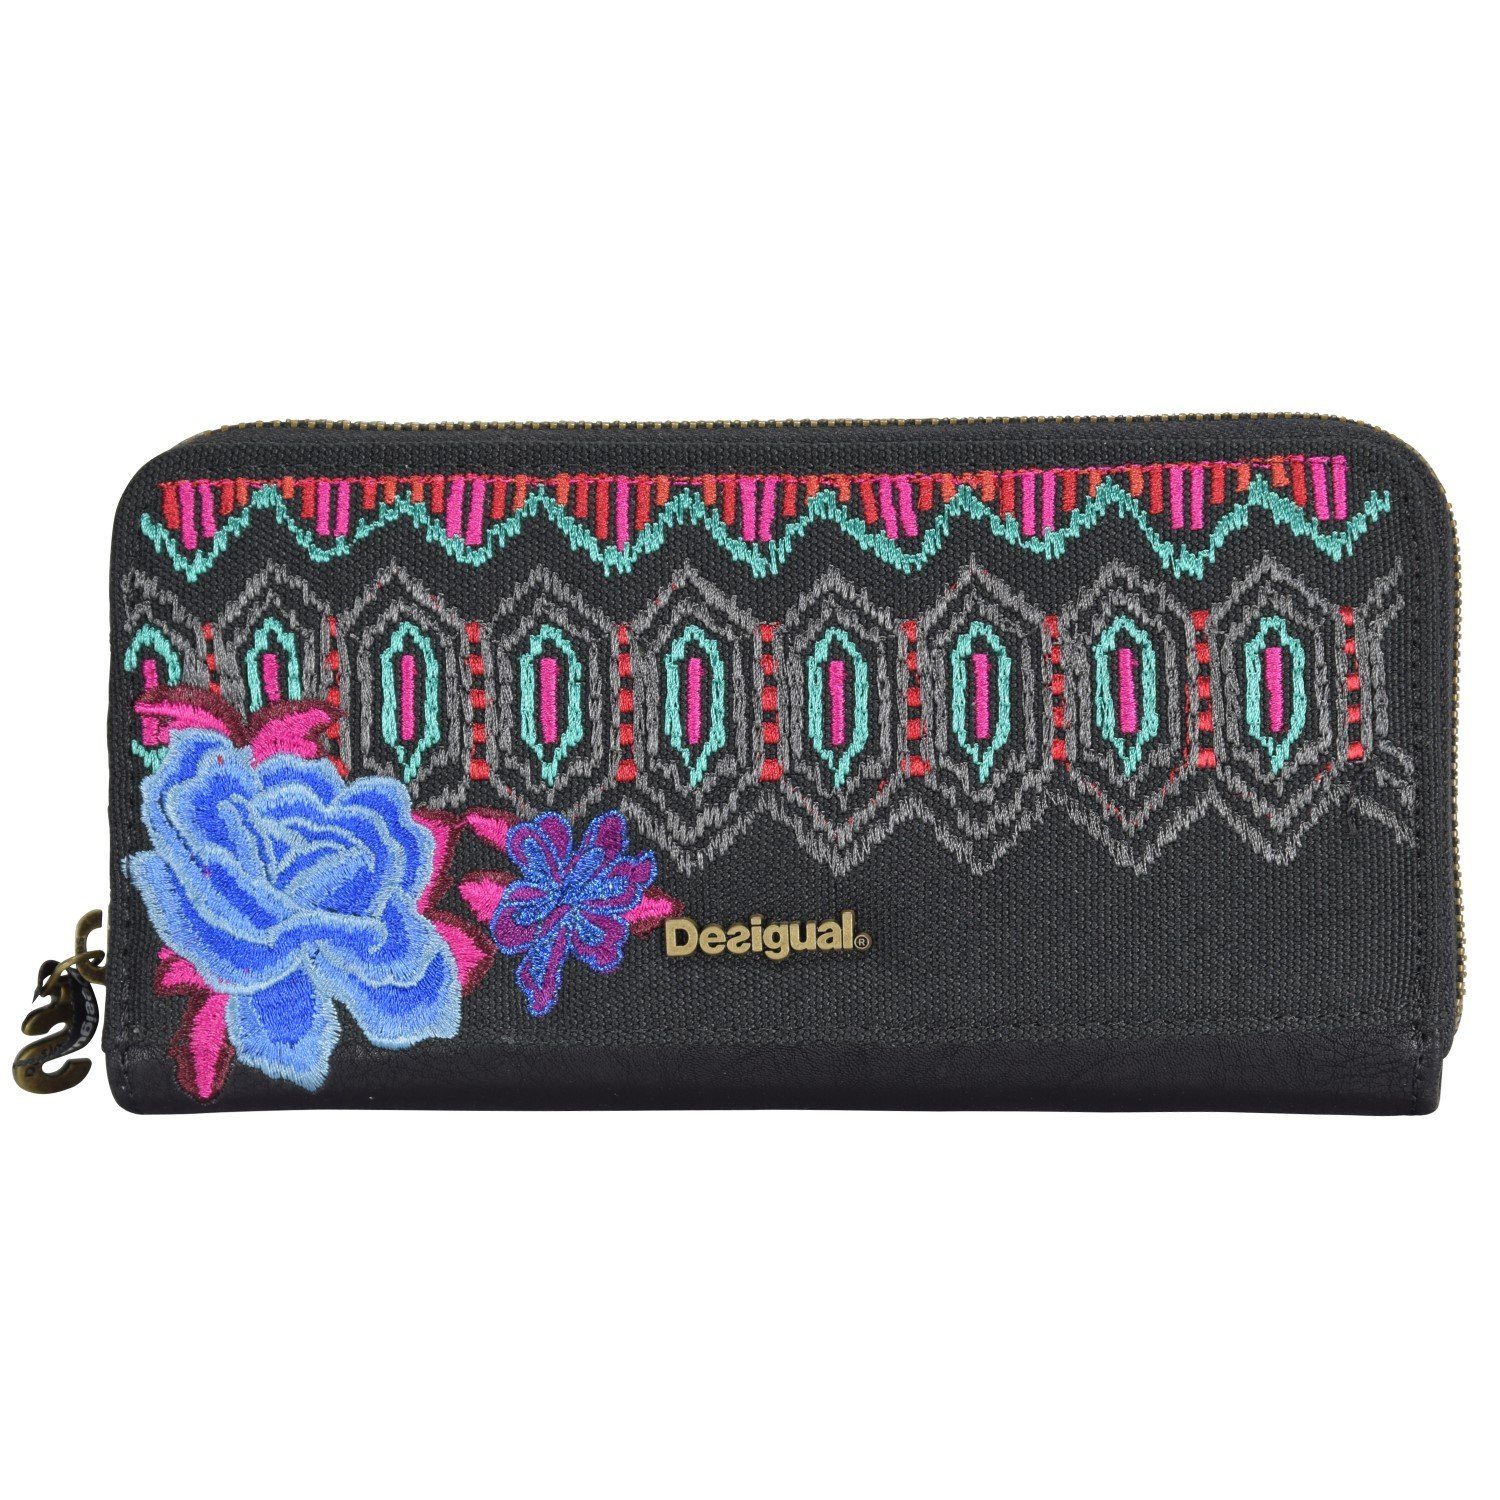 Desigual MONE Zip Around Eternal Geldbörse 19 cm